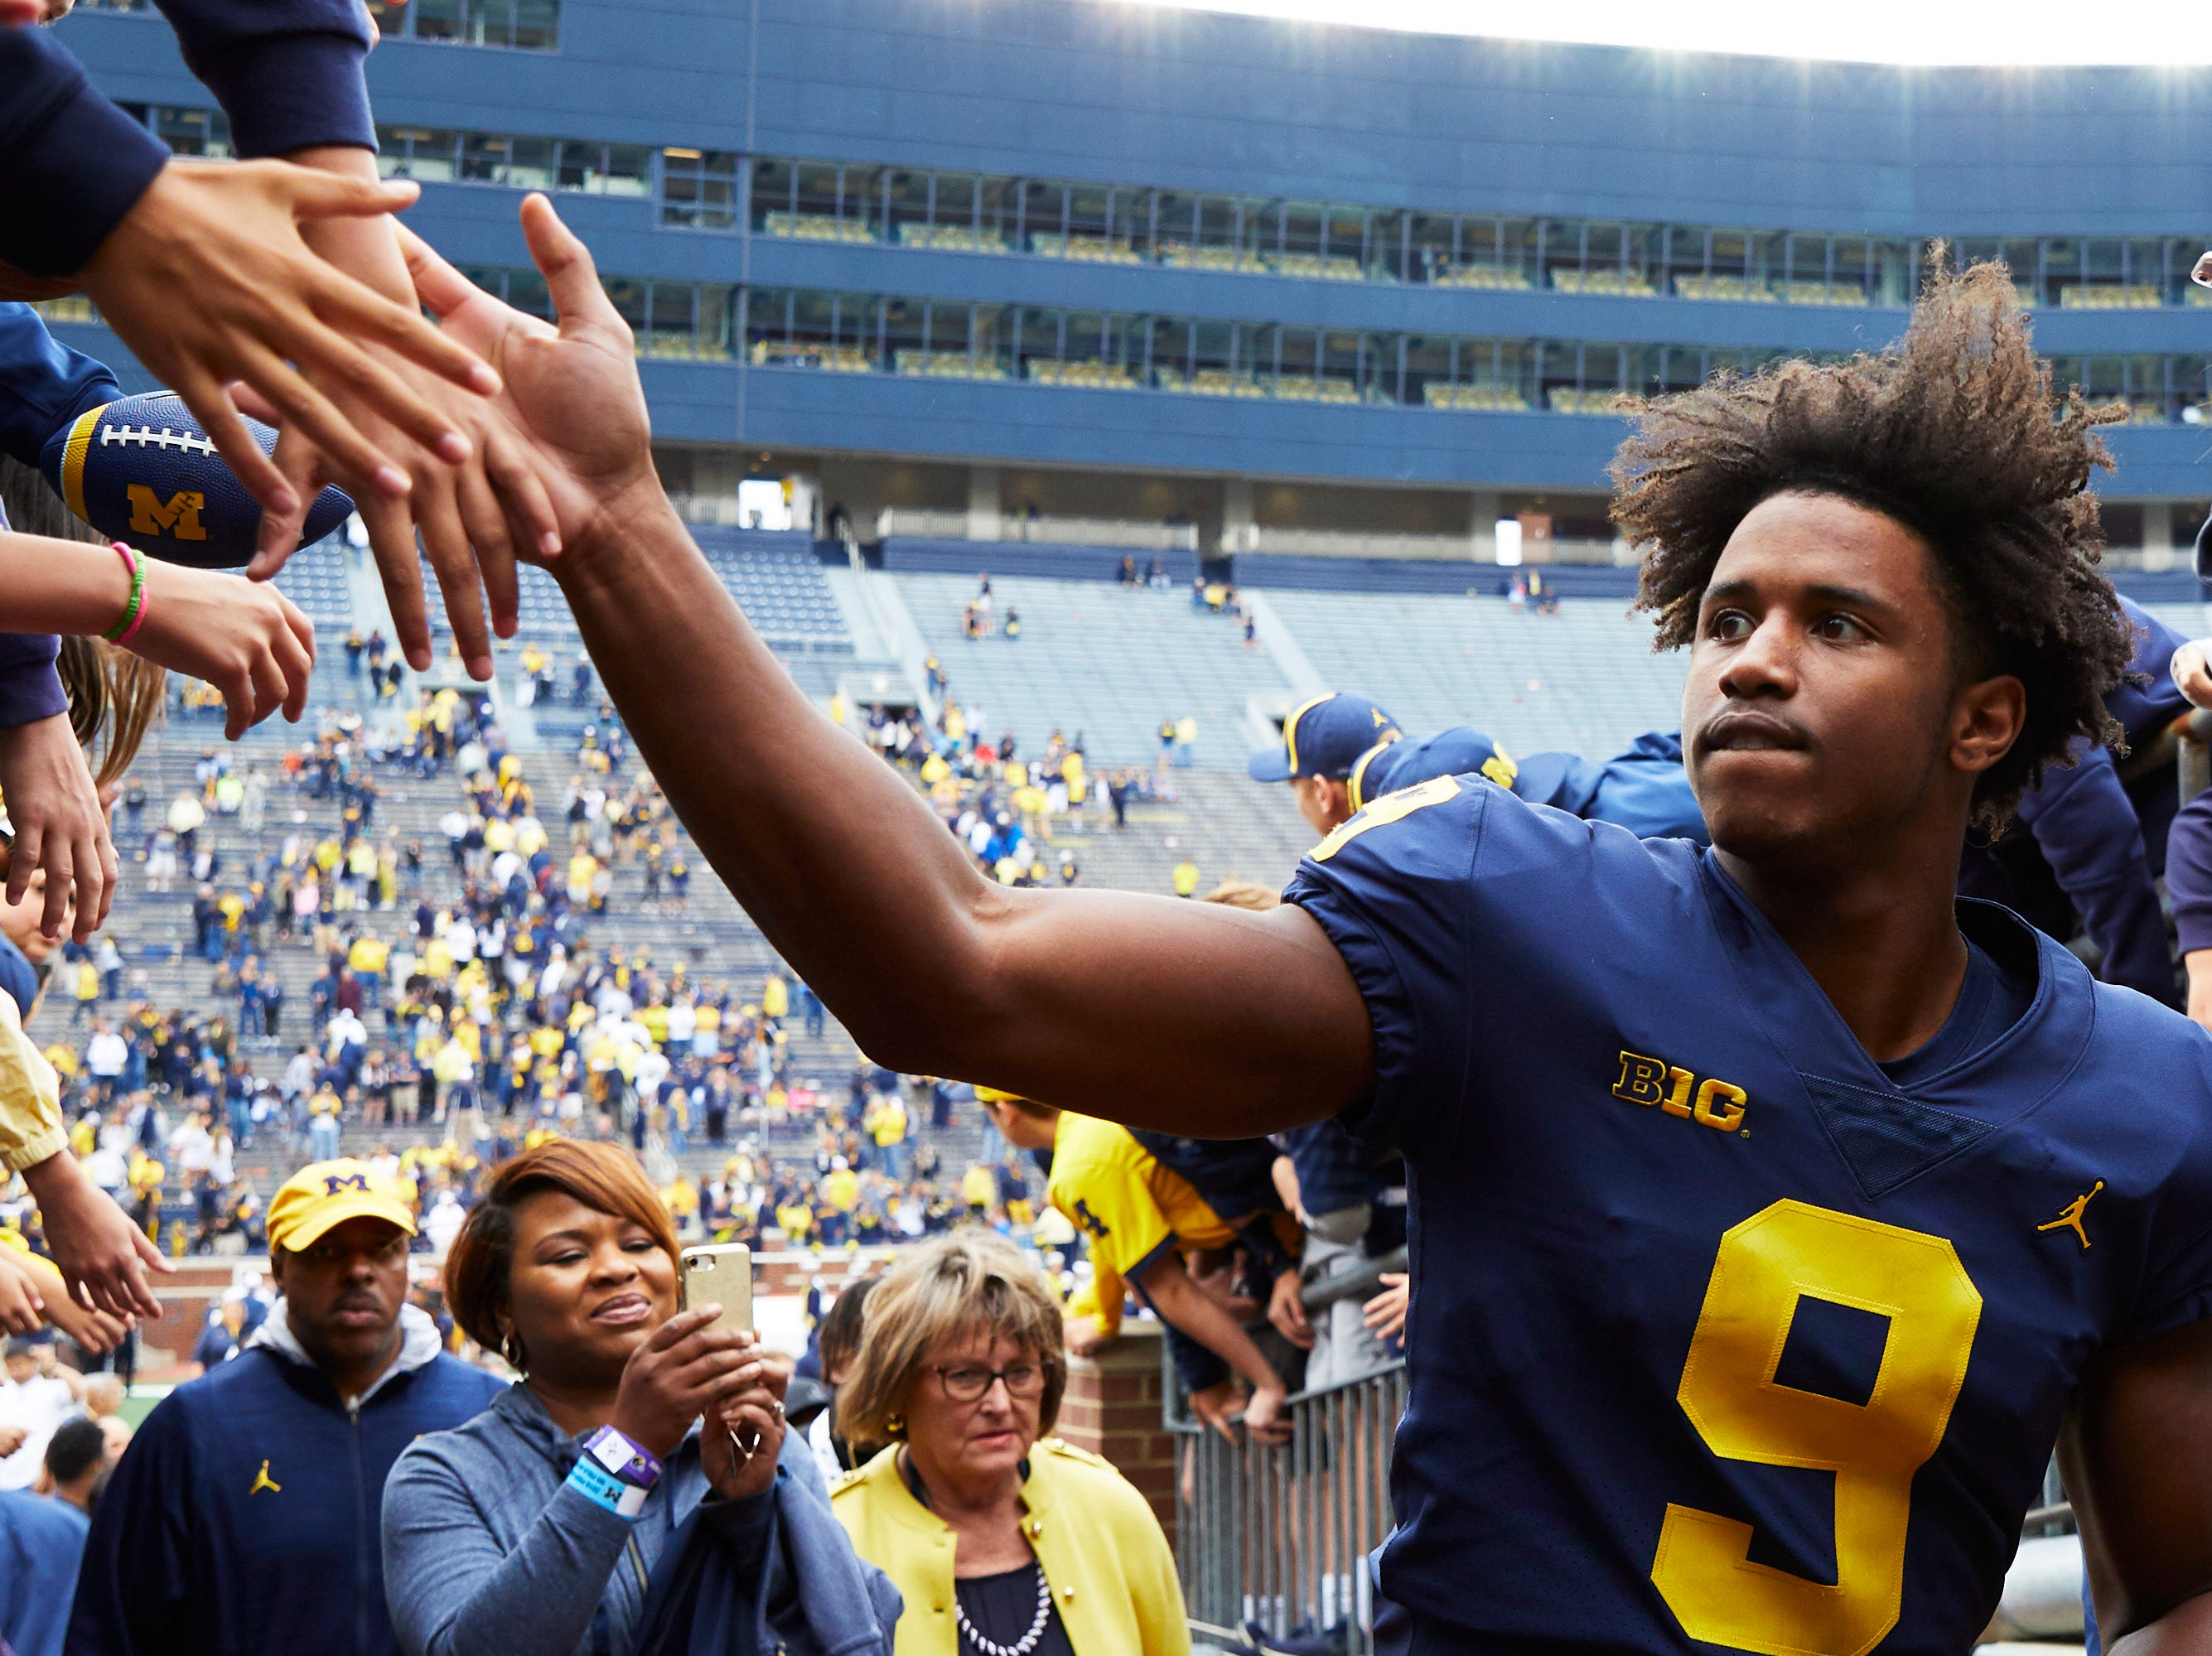 Sep 8, 2018; Ann Arbor, MI, USA; Michigan Wolverines wide receiver Donovan Peoples-Jones (9) high fives fans as he leaves the field after a game against the Western Michigan Broncos at Michigan Stadium. Mandatory Credit: Rick Osentoski-USA TODAY Sports